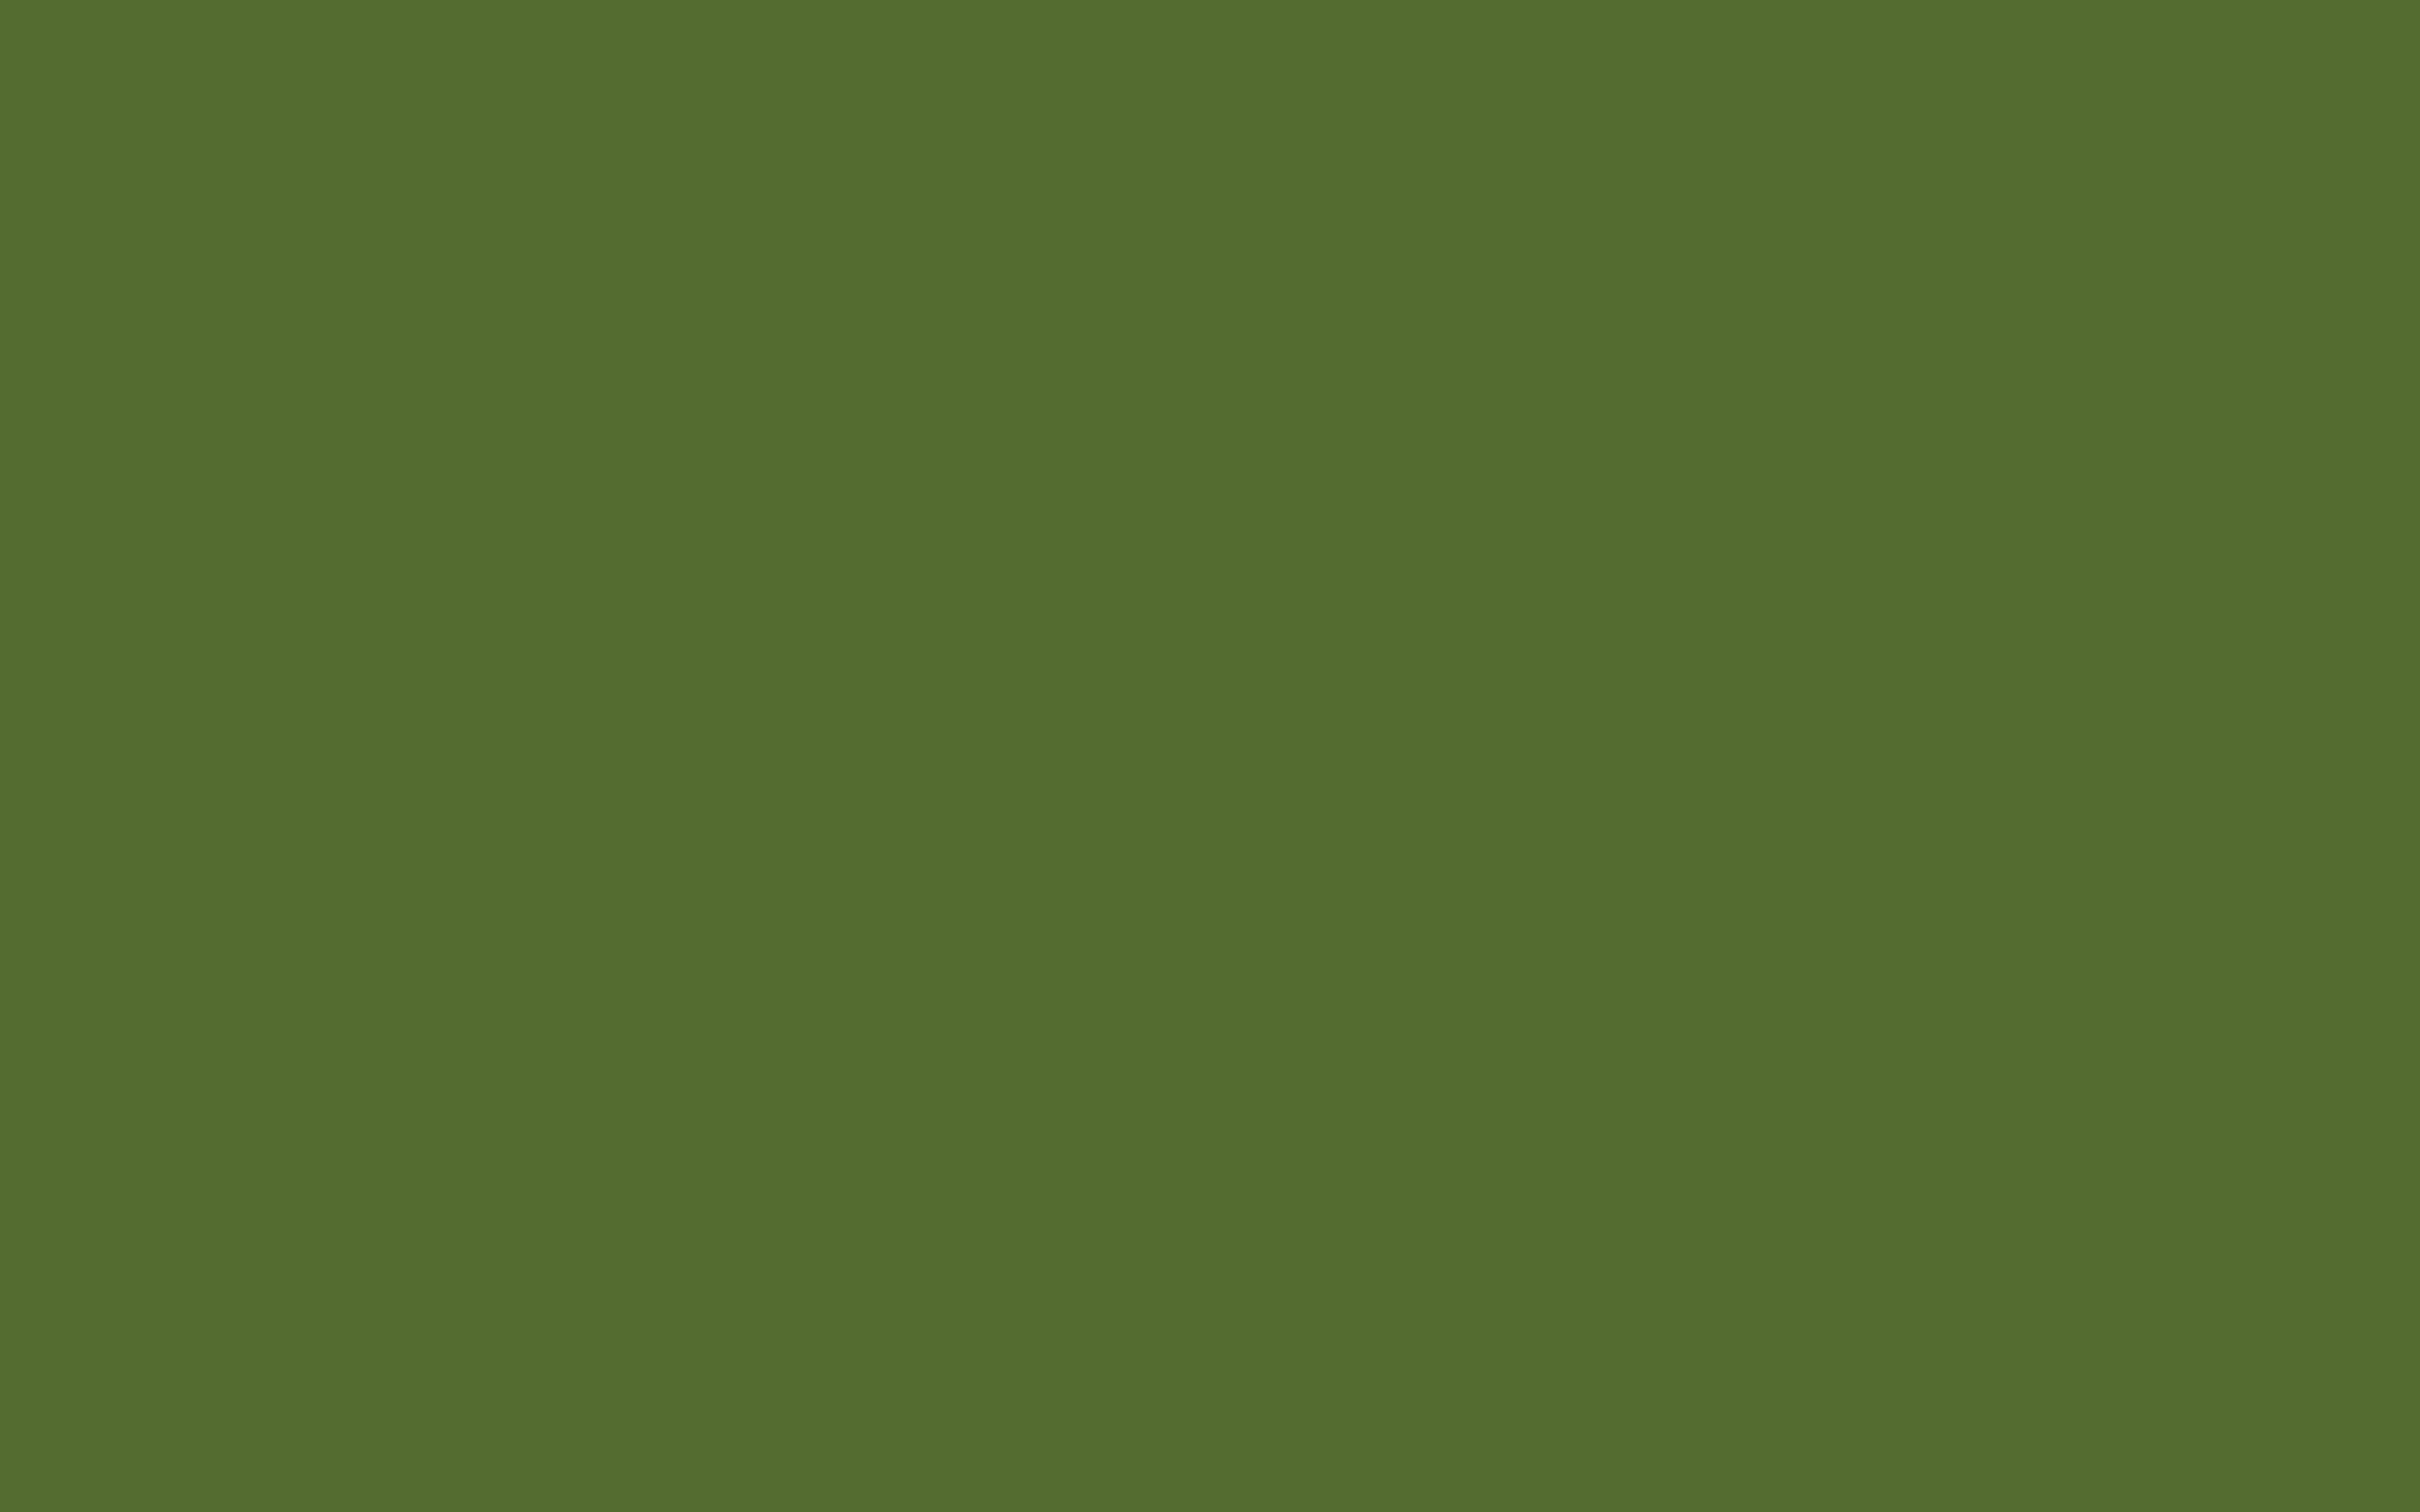 Couleur Vert Olive Clair 2880x1800 Dark Olive Green Solid Color Background